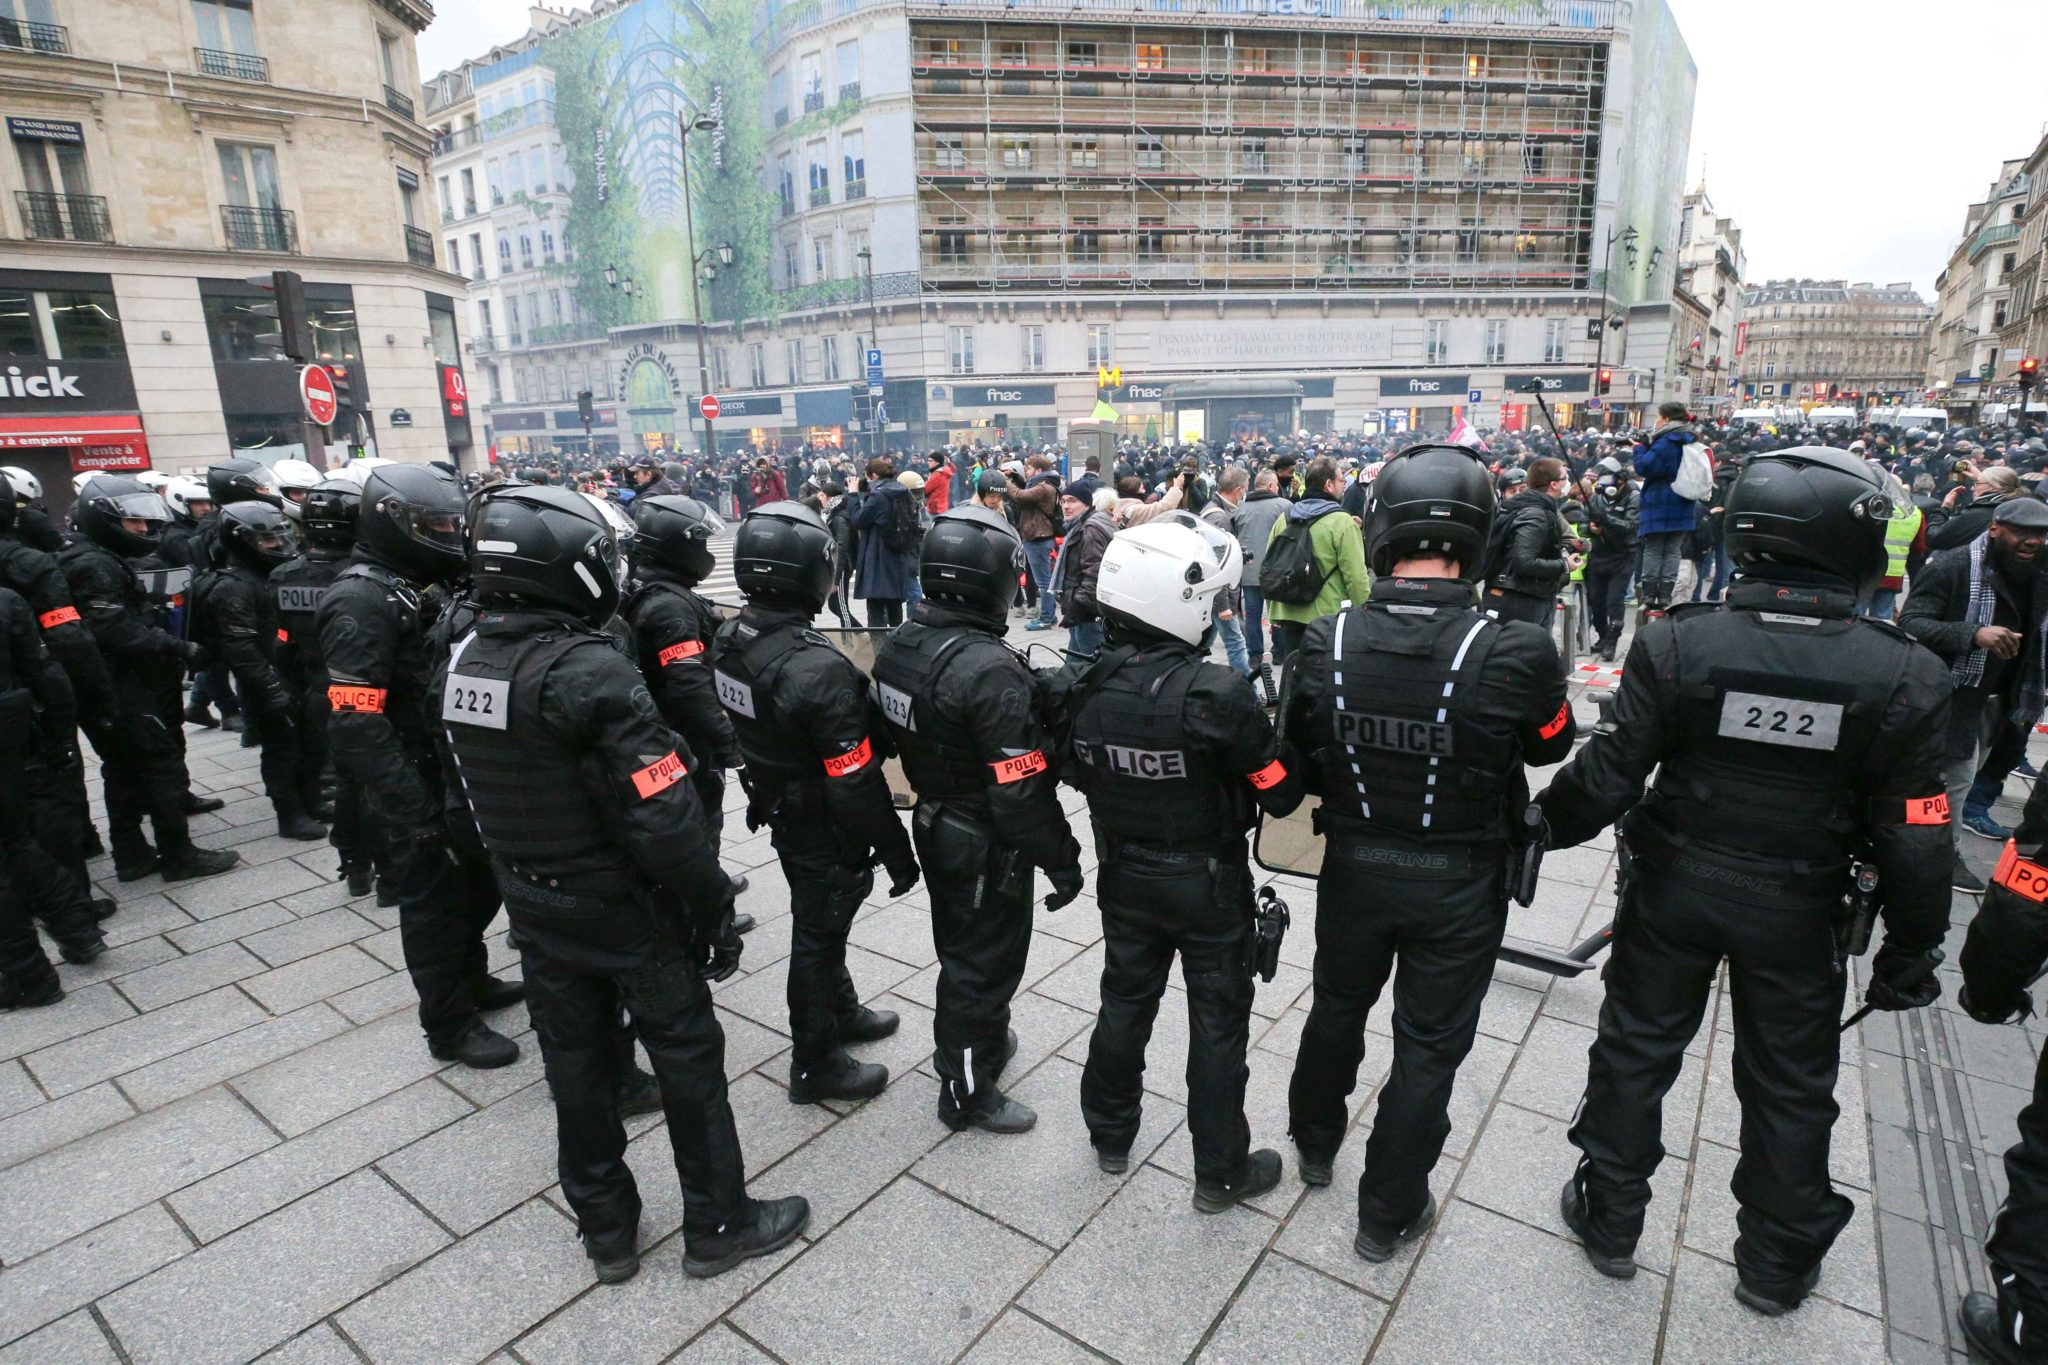 CRS riot policemen stand in front of protesters during a demonstration in Paris, on January 9, 2020, on the 36th day of a nationwide multi-sector strike against French government's pensions overhaul.